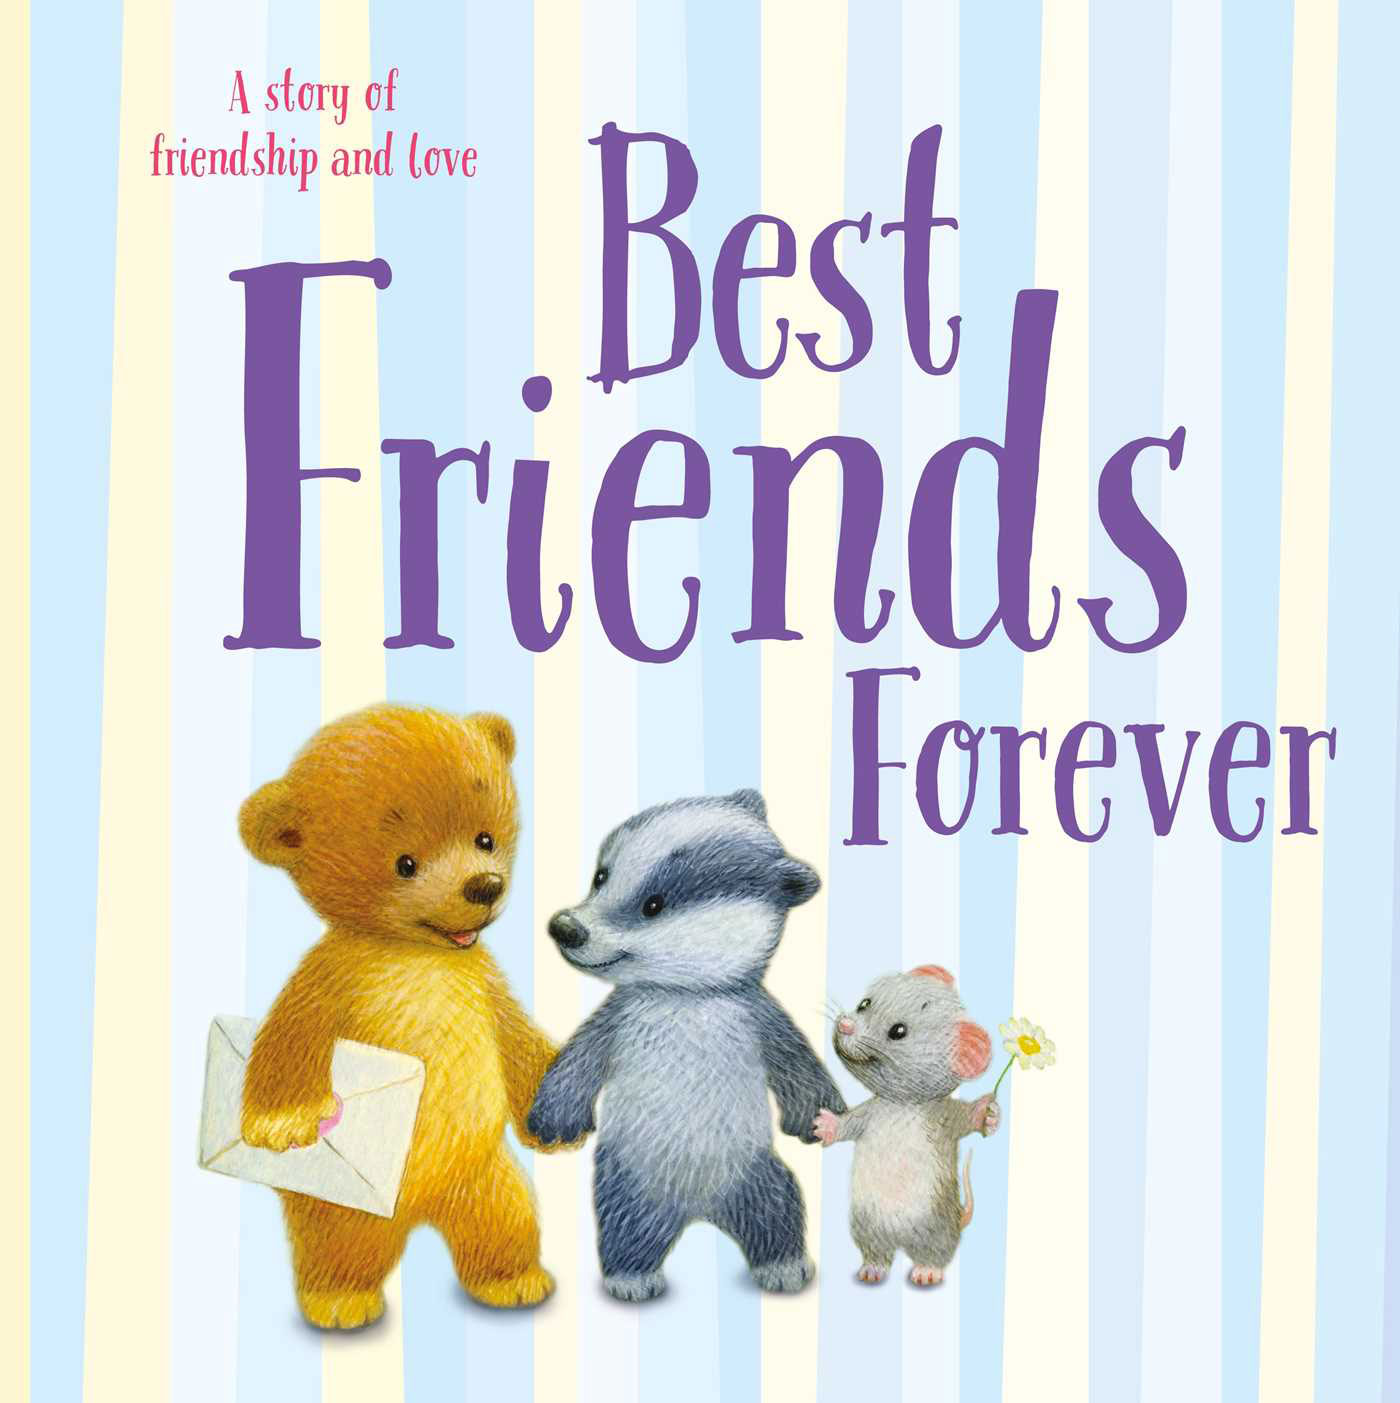 2021 Friend Forever Images photo download